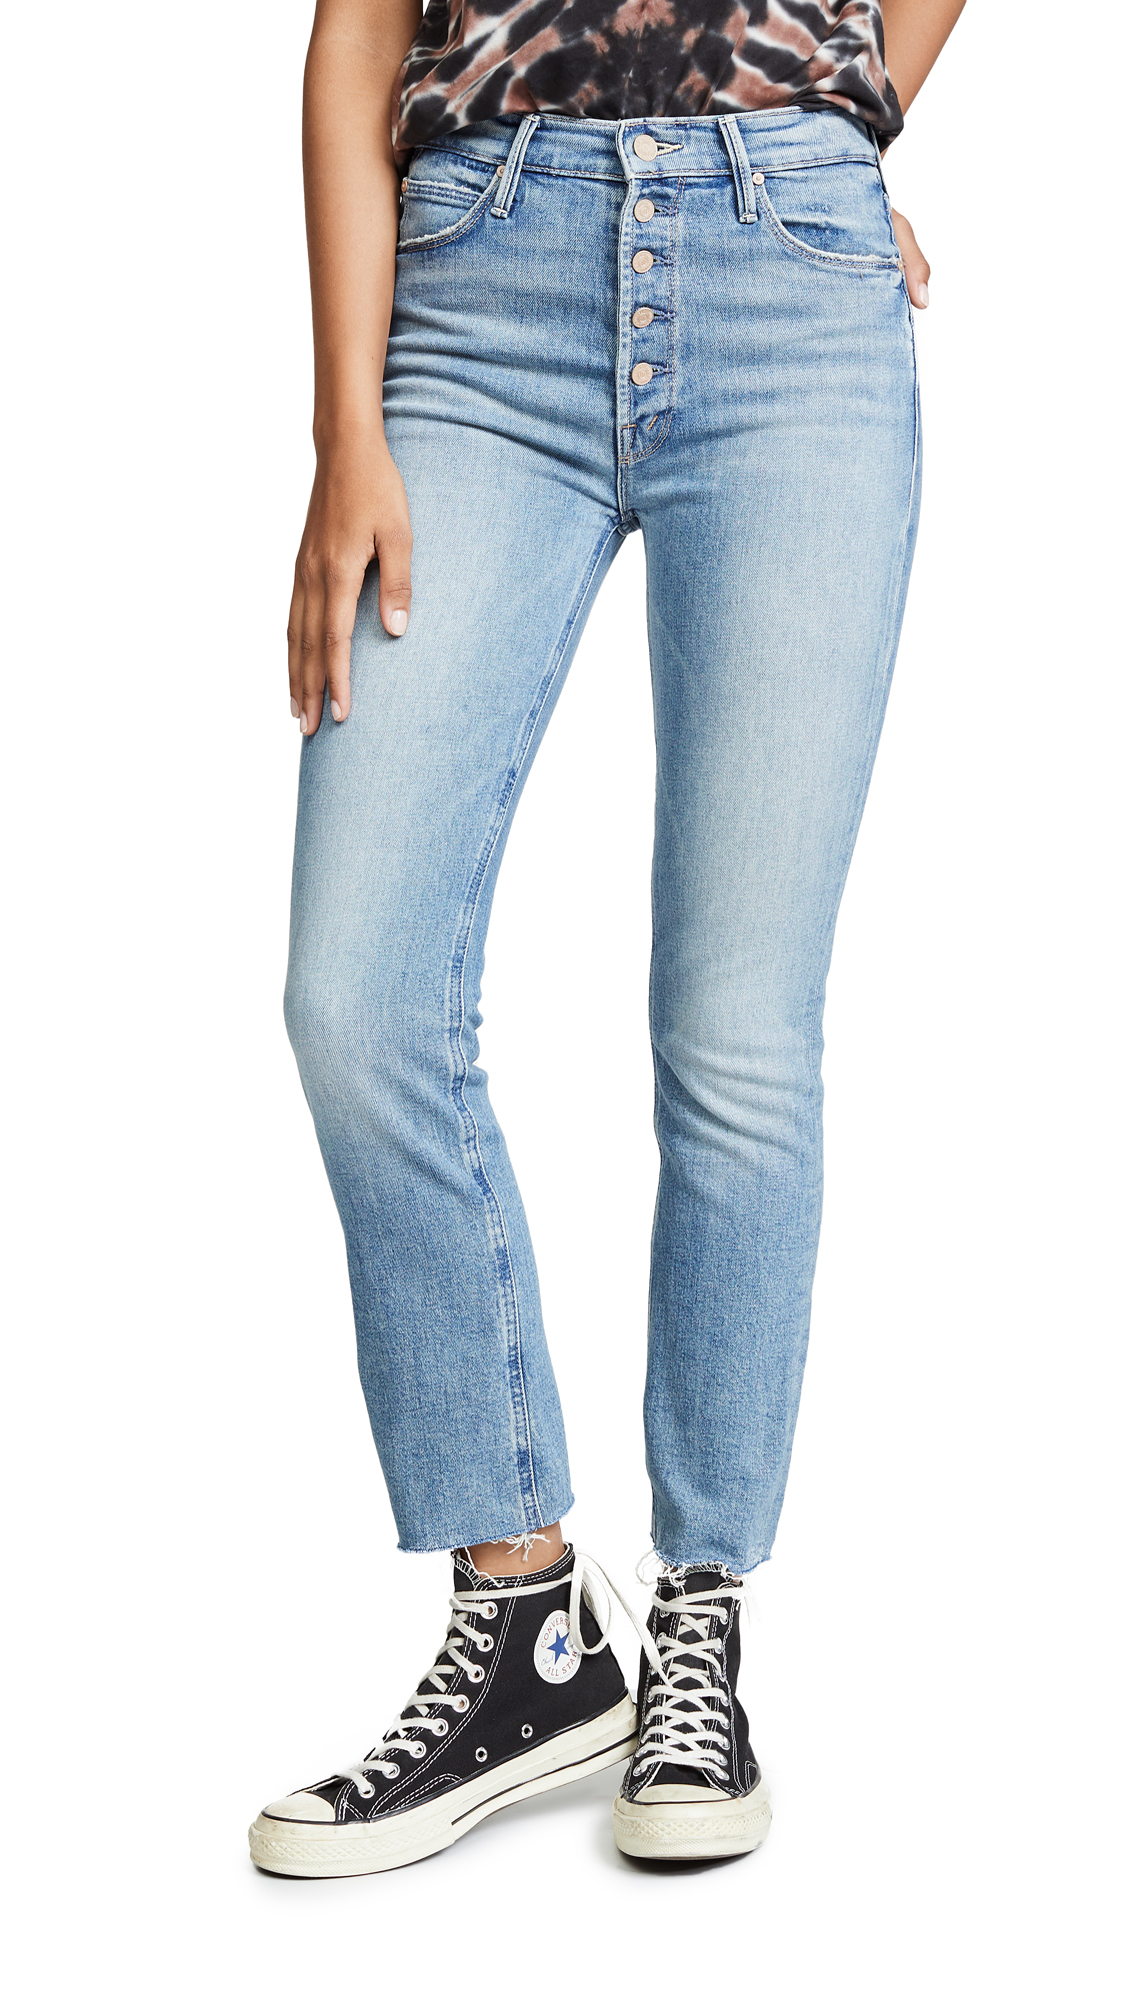 Jeans In The Ankle Pixie Fray Secret Mother SisterModesens Dazzler ARL34j5